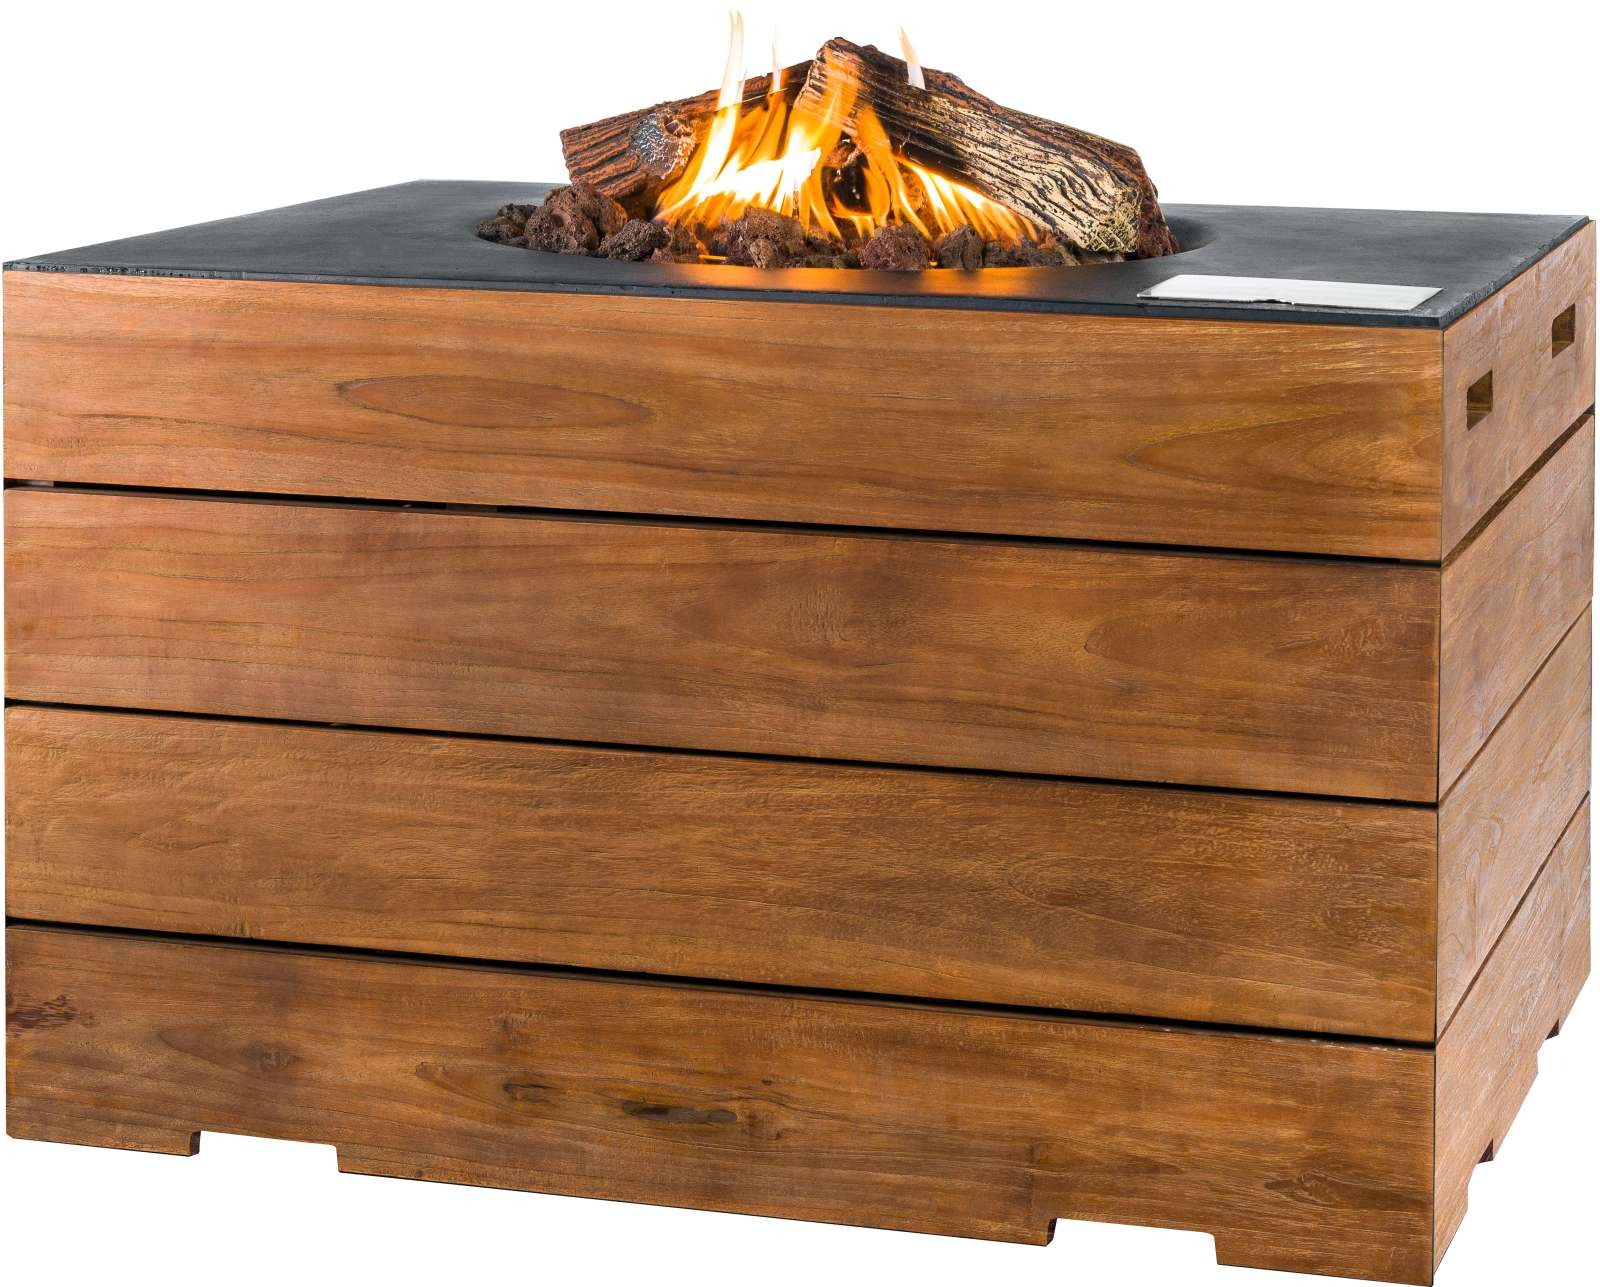 kaminwunder online shop angolo grande teak gartenfeuer gaskamin garten outdoor feuer tisch. Black Bedroom Furniture Sets. Home Design Ideas